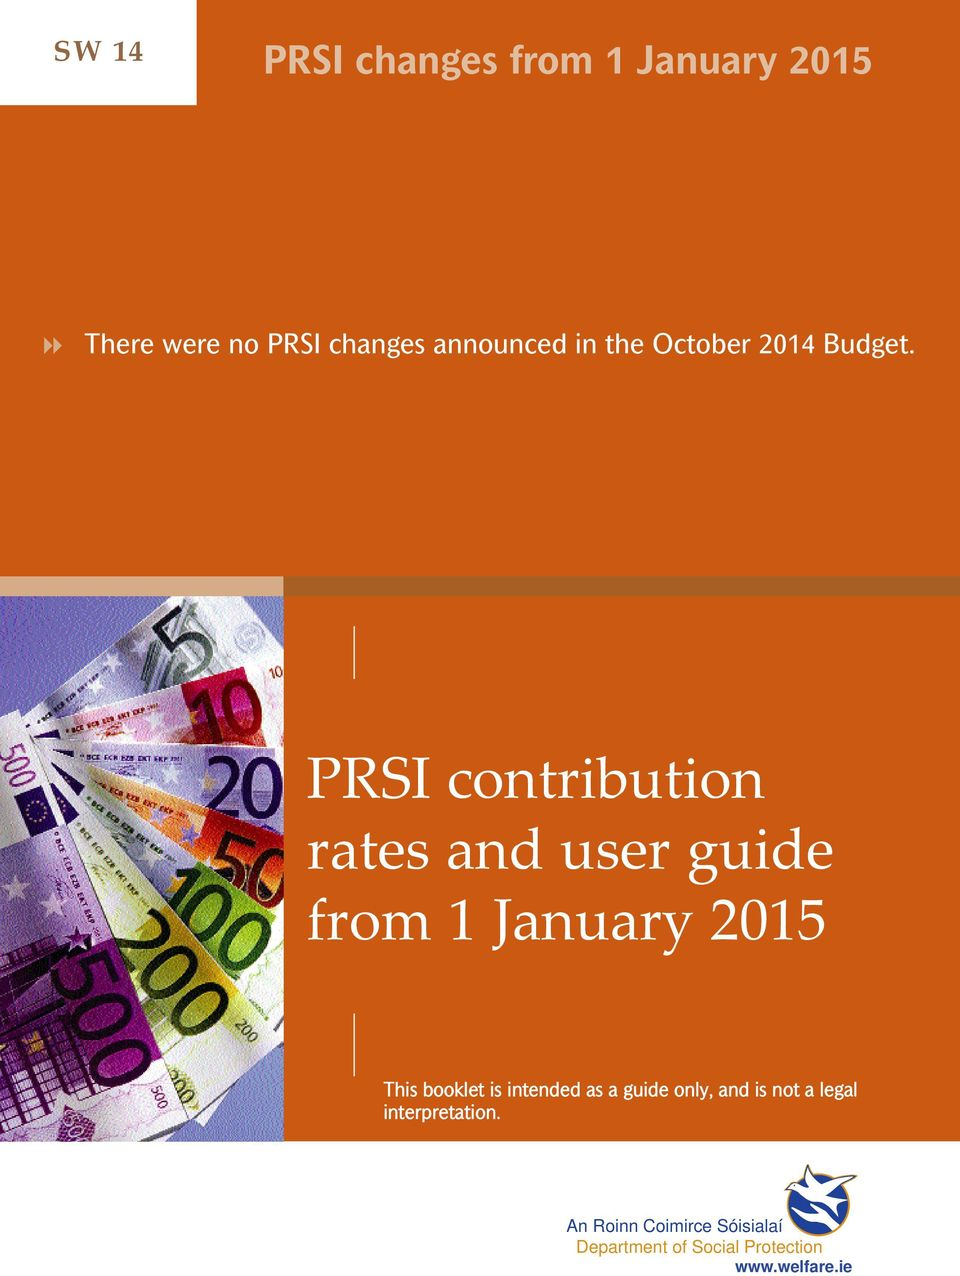 PRSI contribution rates and user guide from 1 January 2015 This booklet is